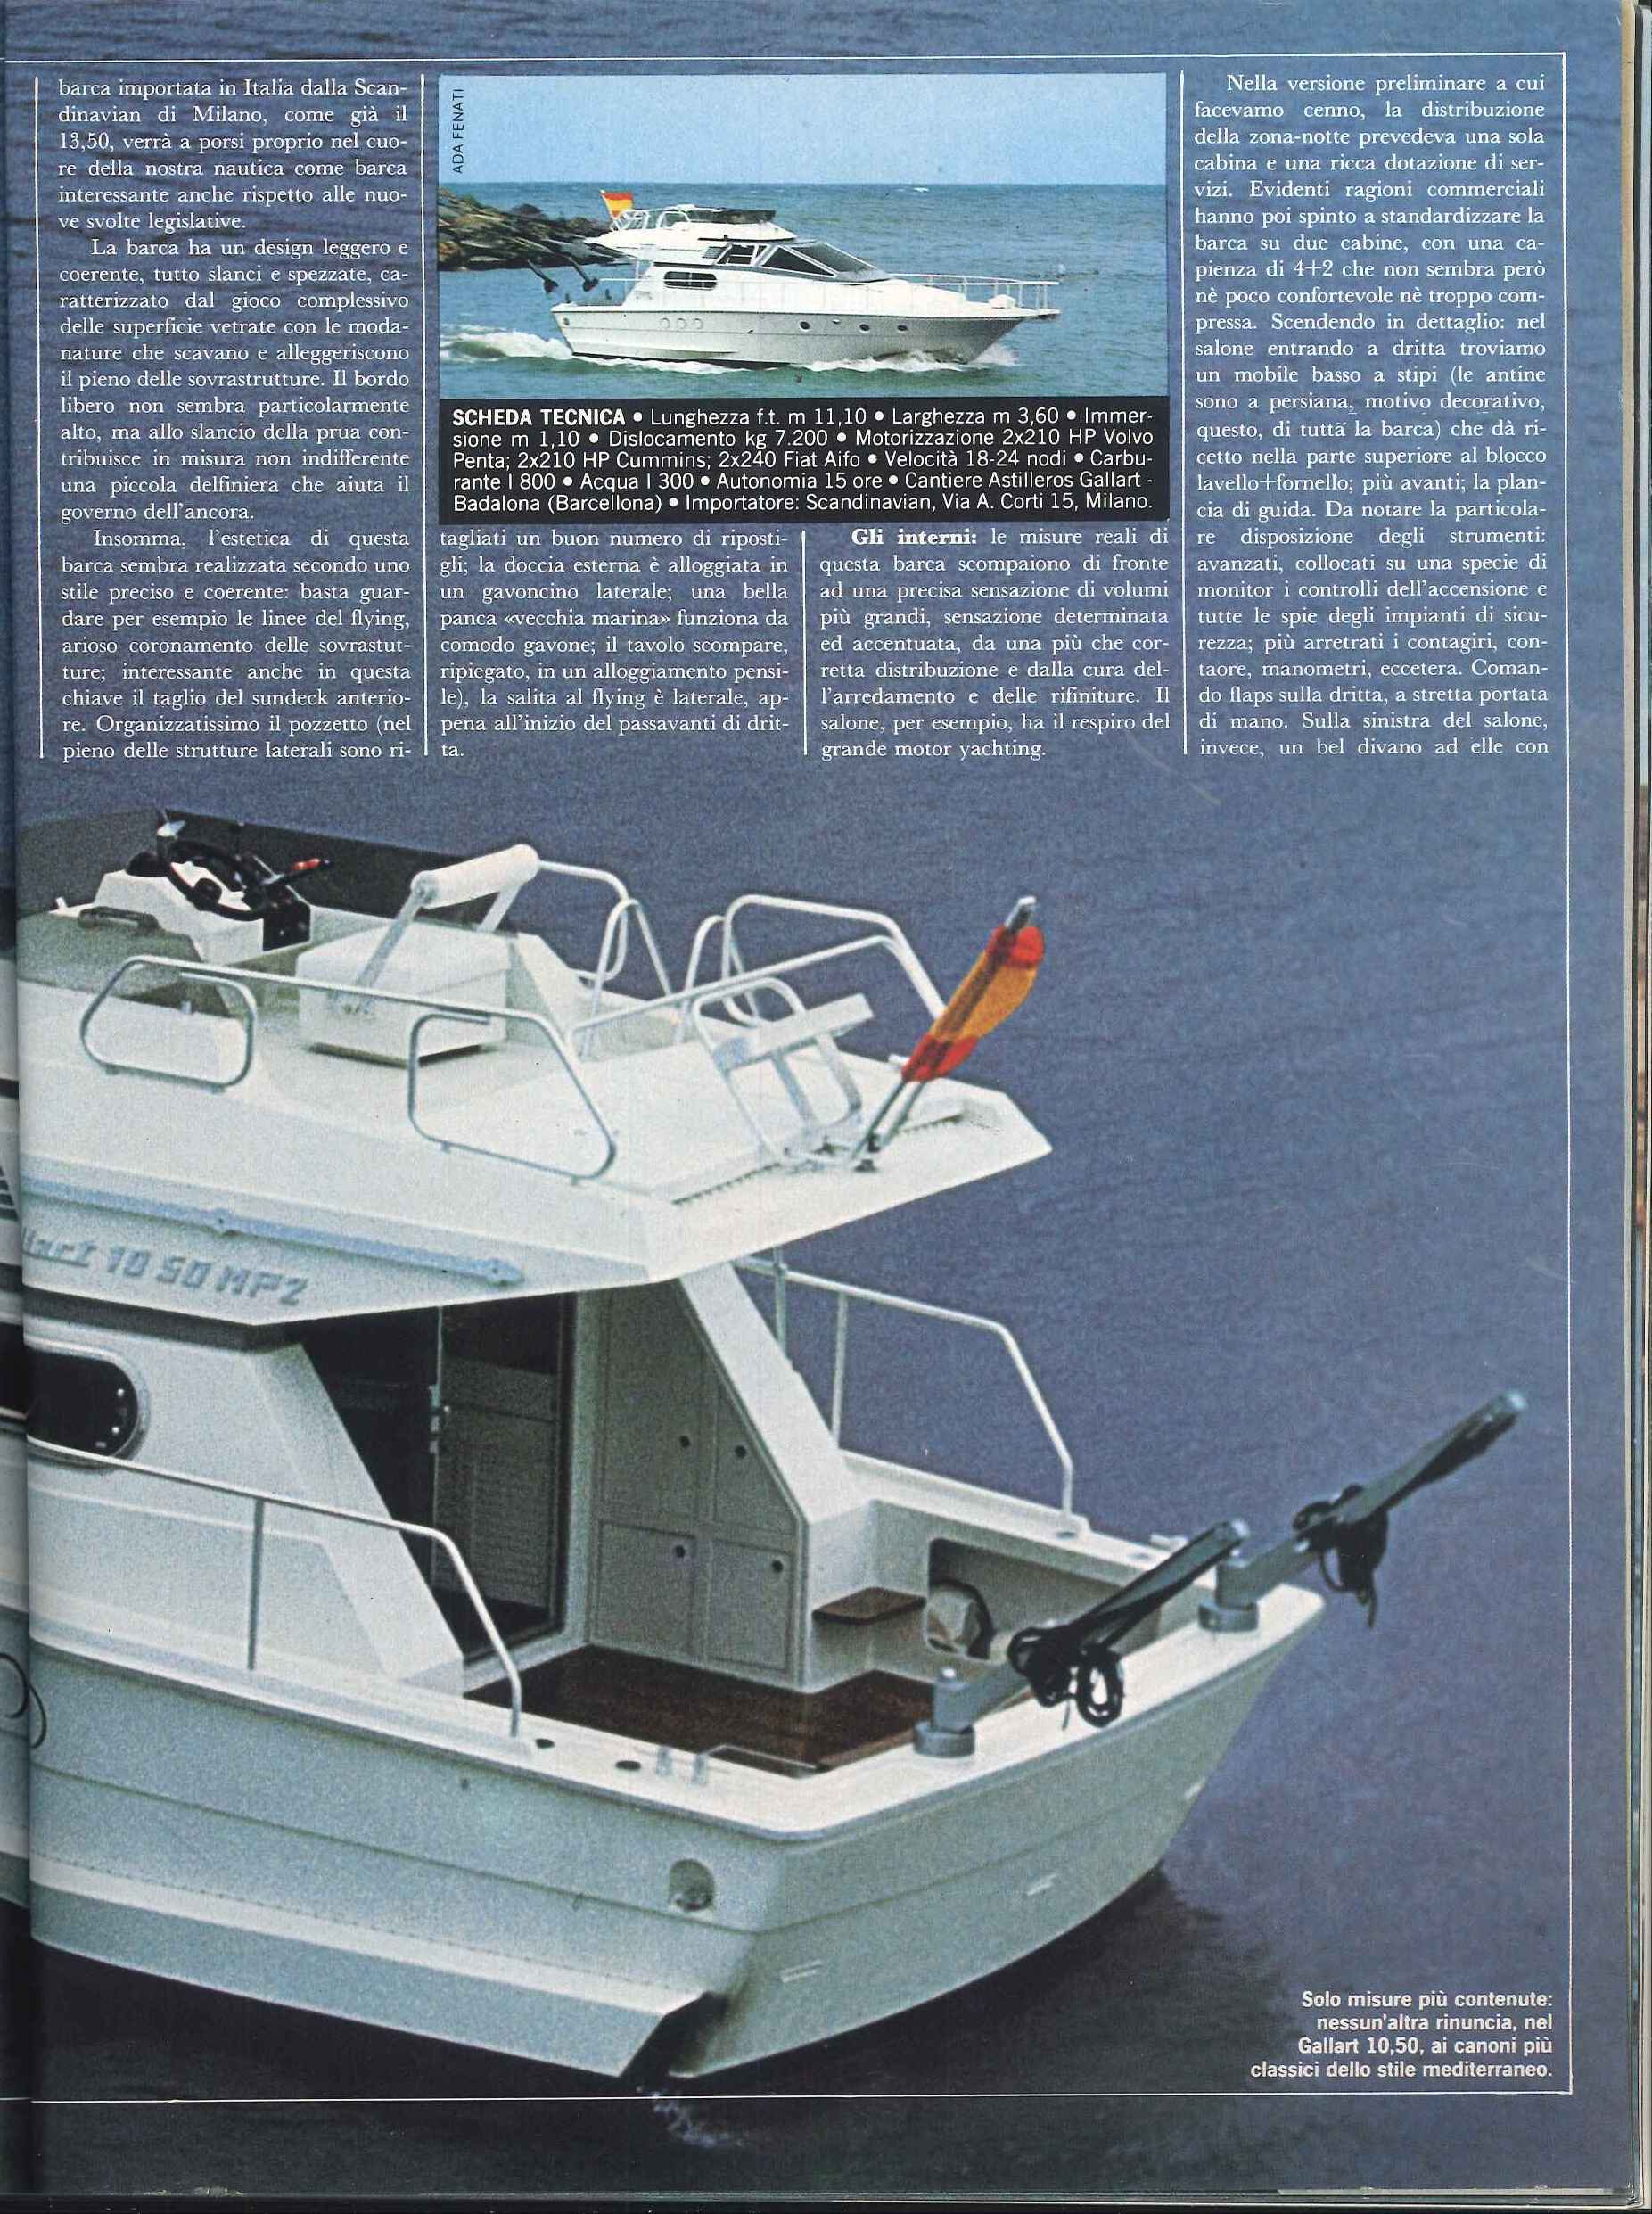 1977 02 PRESS GALLART 10.50 UOMO MARE N°19 (2).jpg